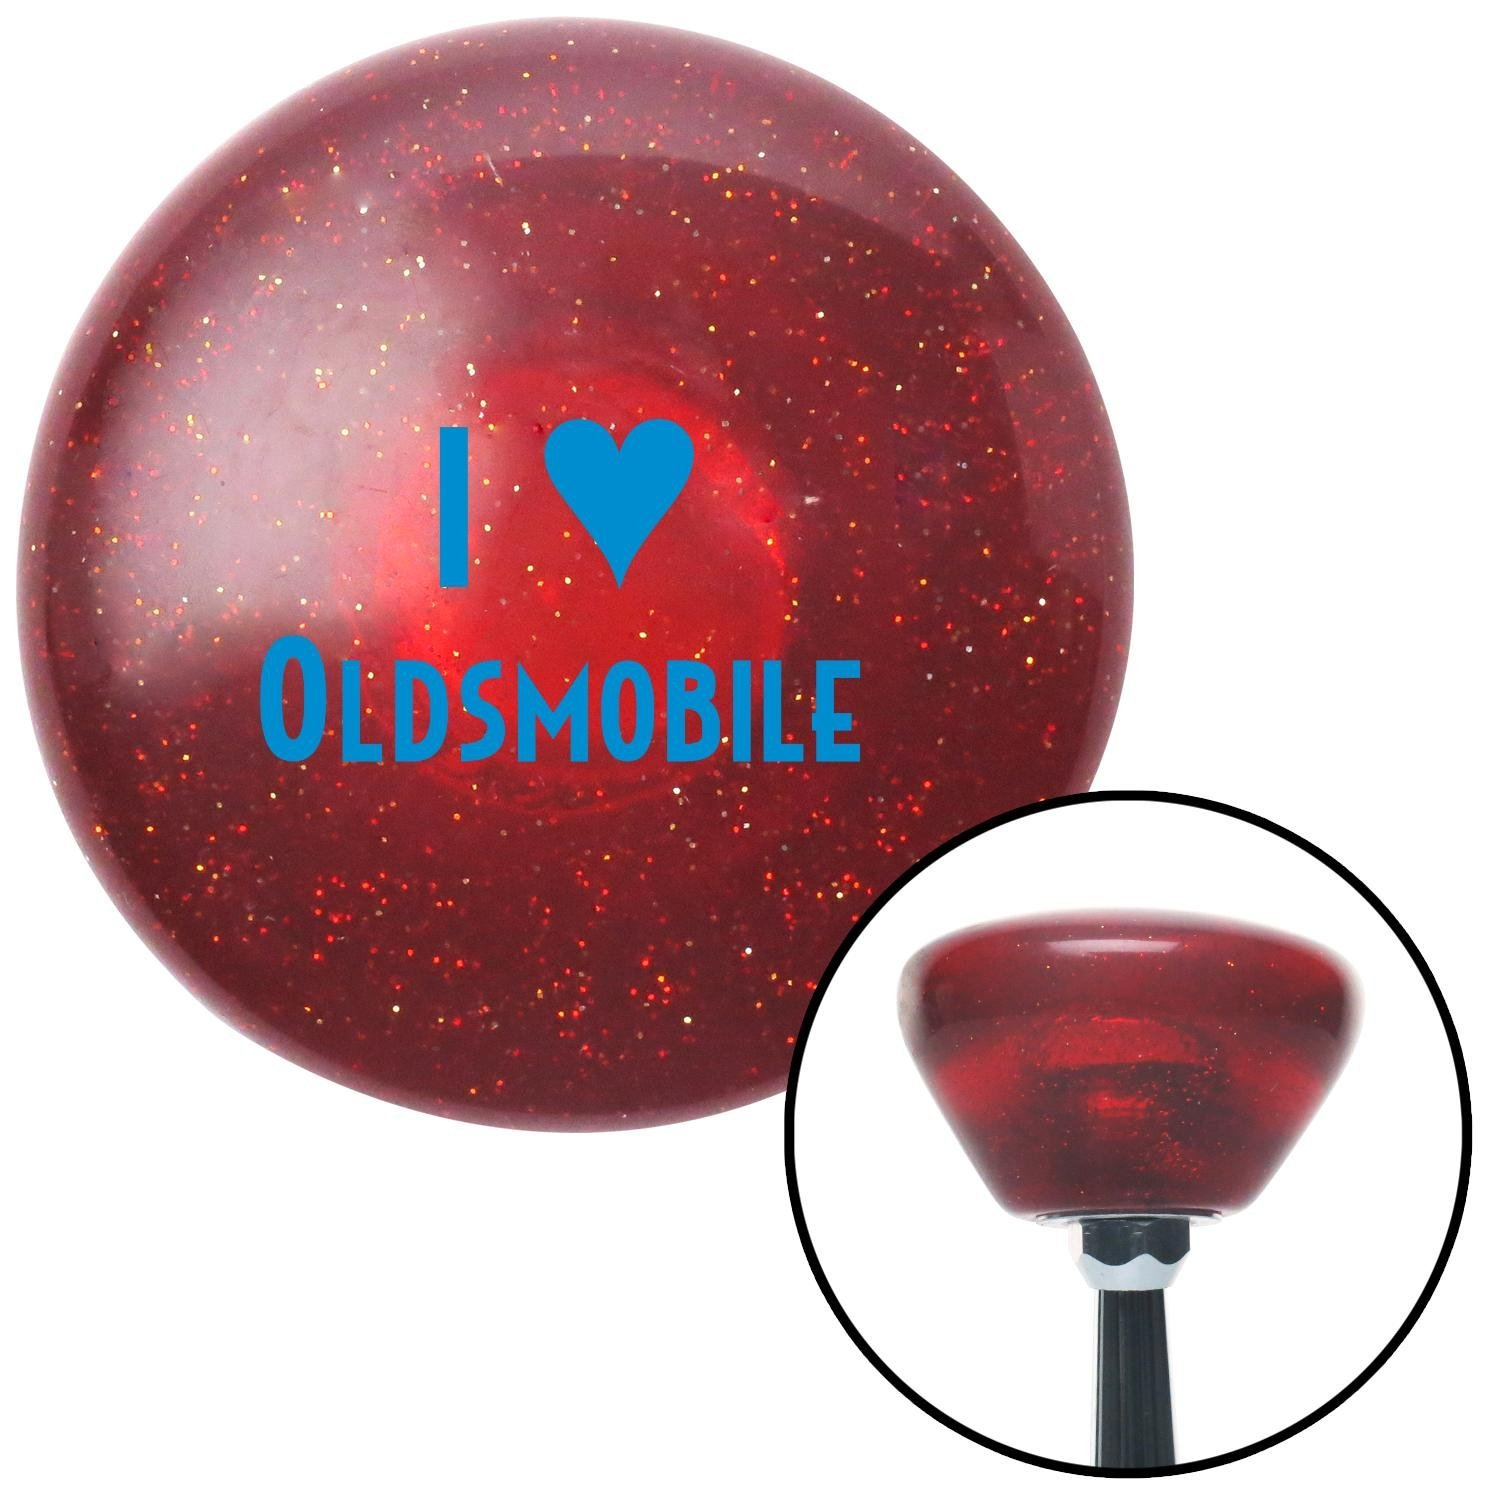 Blue I 3 Oldsmobile American Shifter 194746 Red Retro Metal Flake Shift Knob with M16 x 1.5 Insert